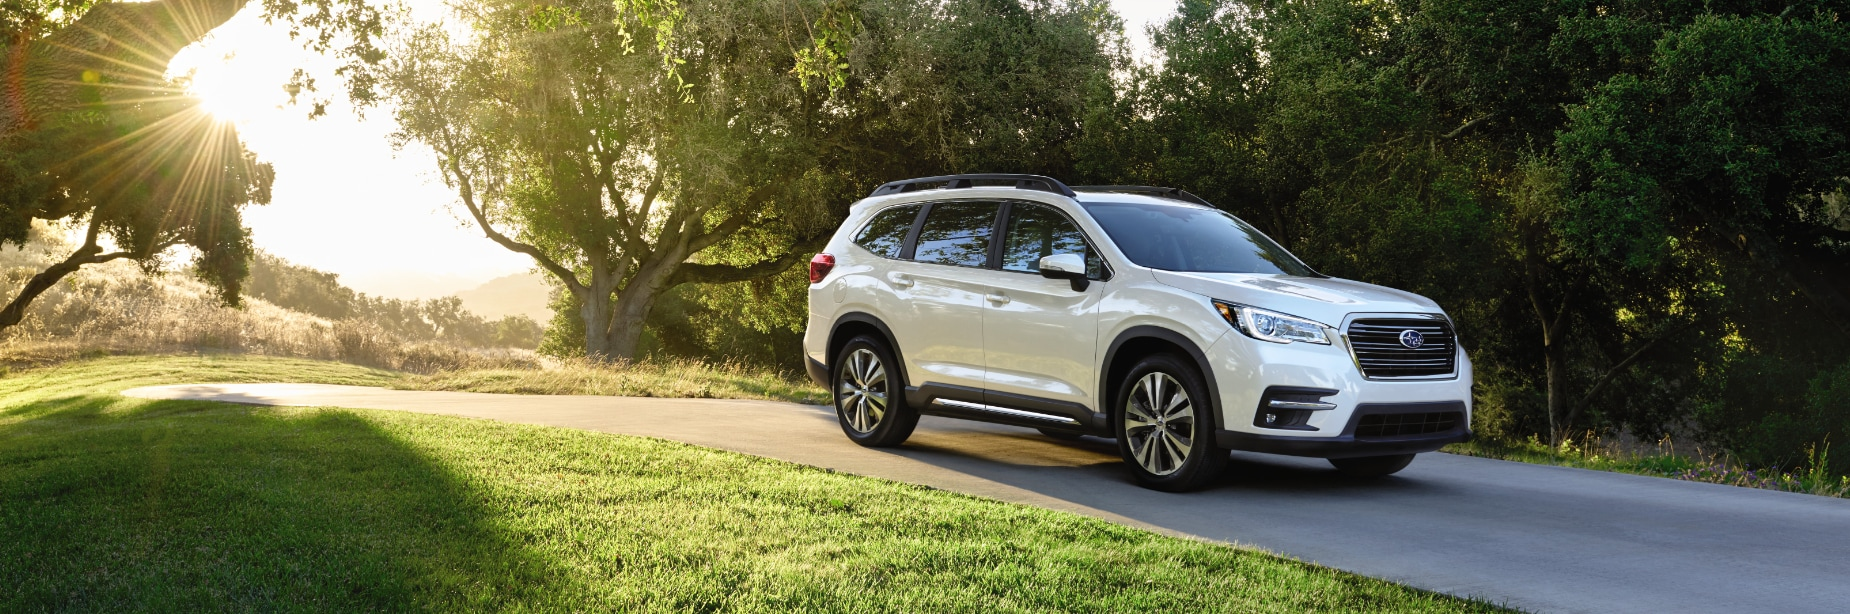 2021 Subaru Ascent Durham - Raleigh